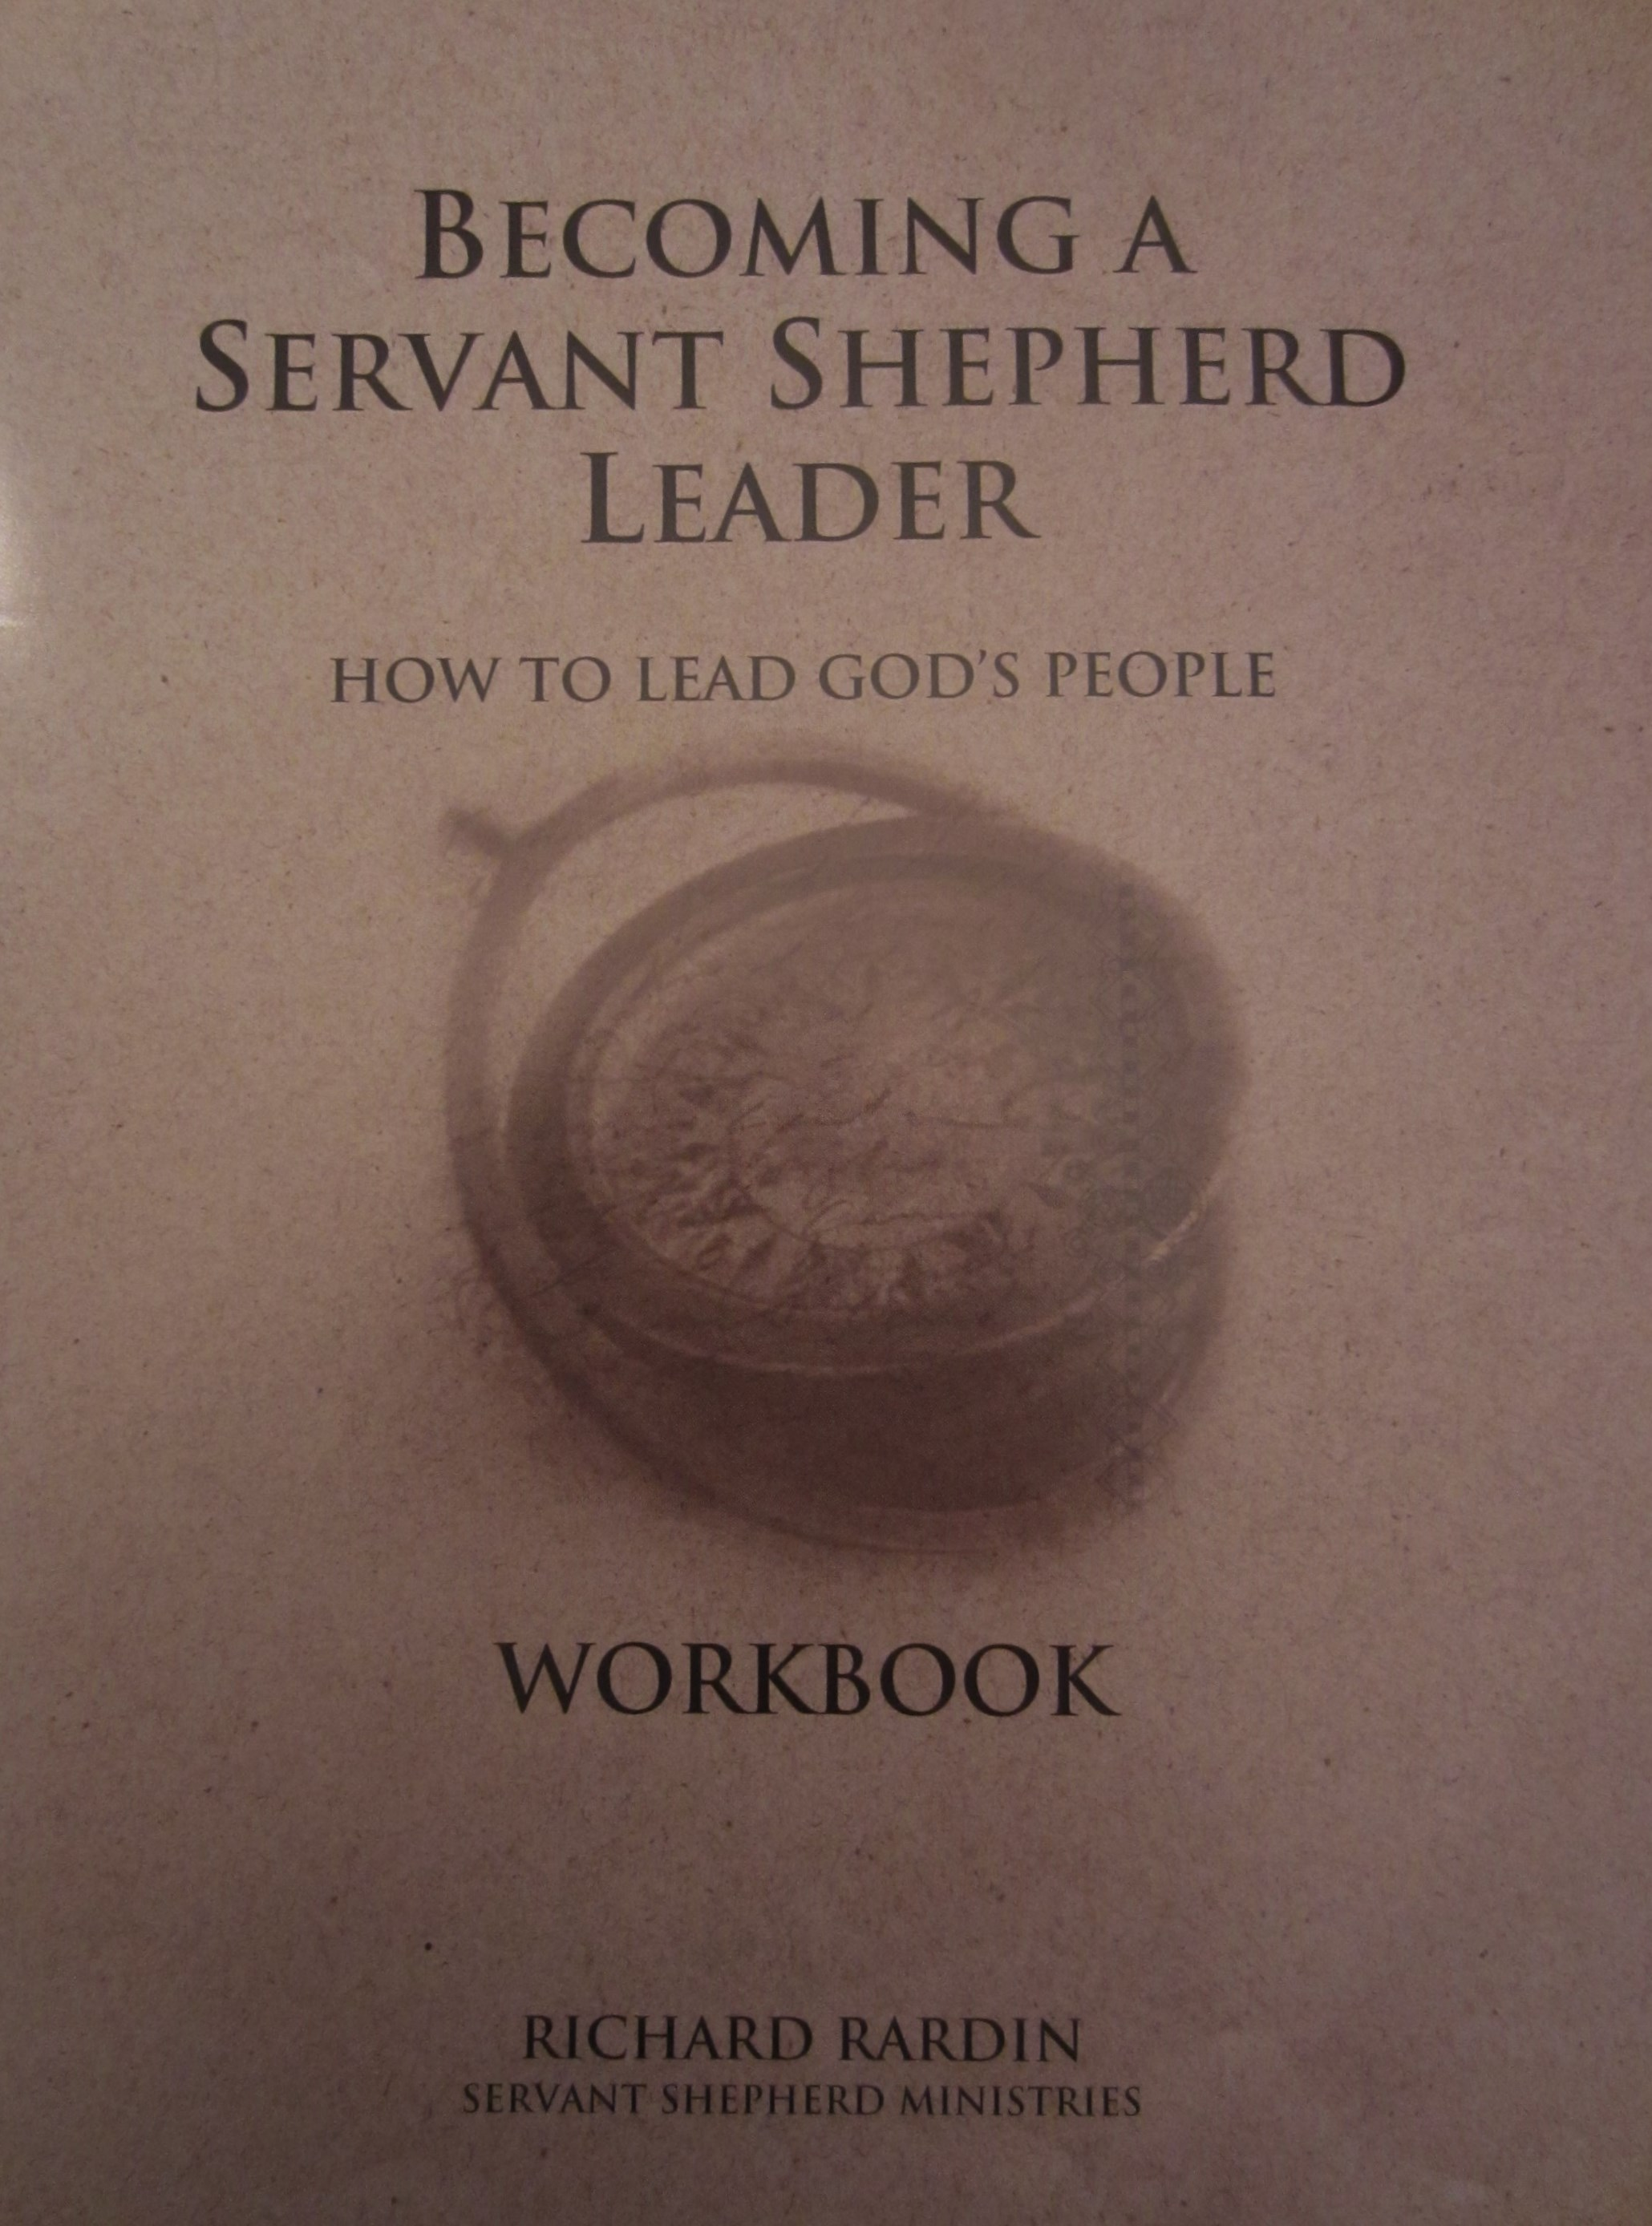 resources center for leadership and spiritual formation becoming a servant shepherd leader workbook this 48 page workbook has 8 modules that are designed to be taught in 60 90 minute segments